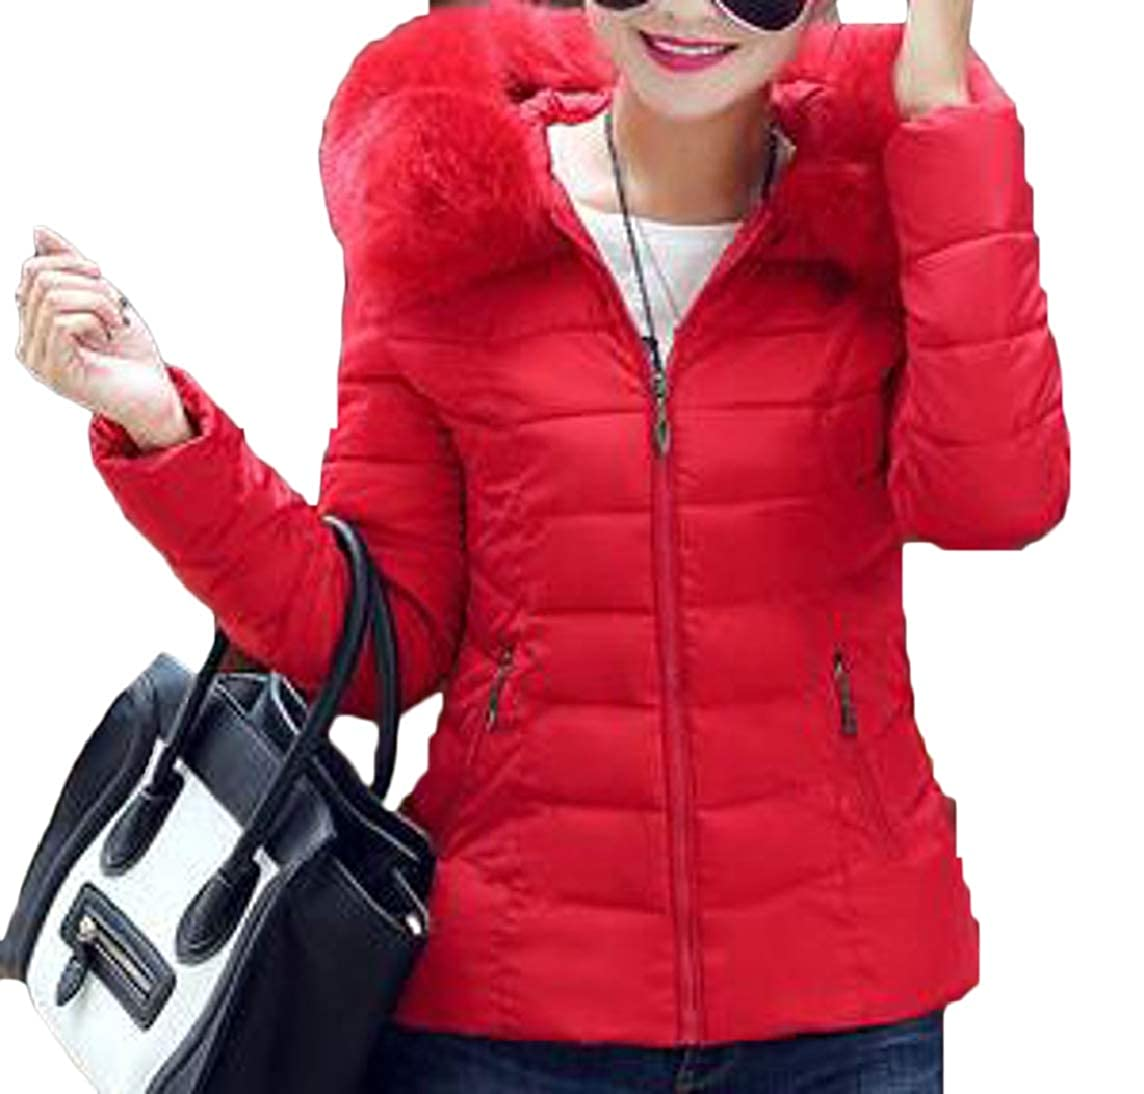 Women Winter Jacket Faux Fur Collar Zipper Coat Warm Hooded Outwear